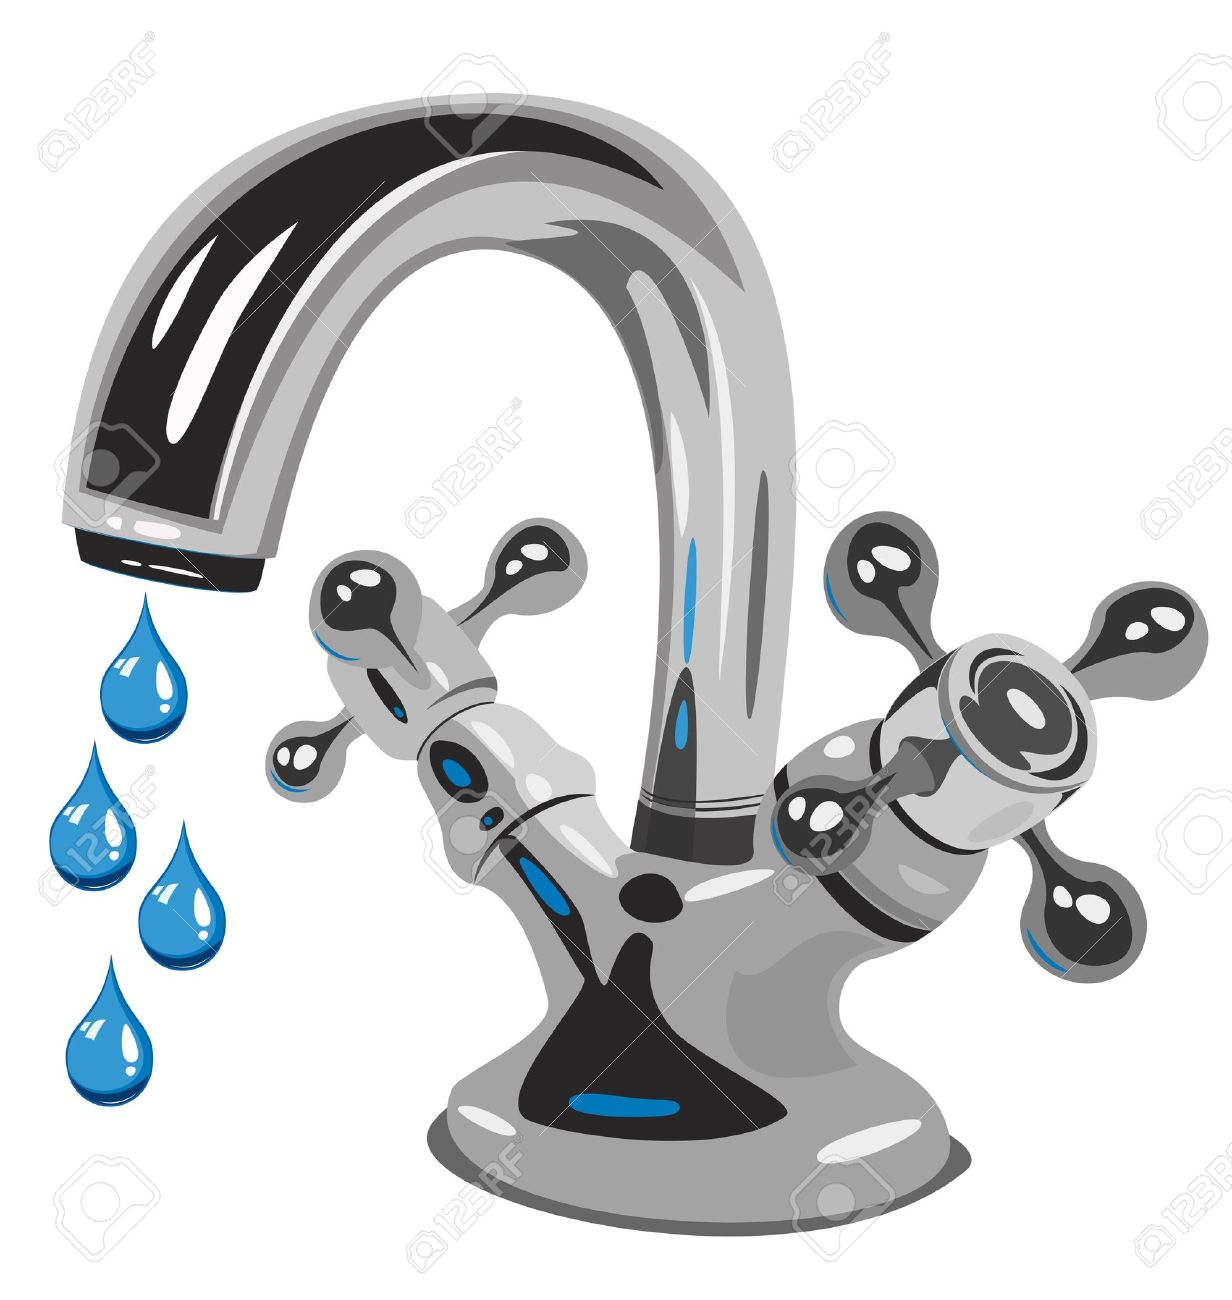 Kitchen Faucet Dripping Clipart